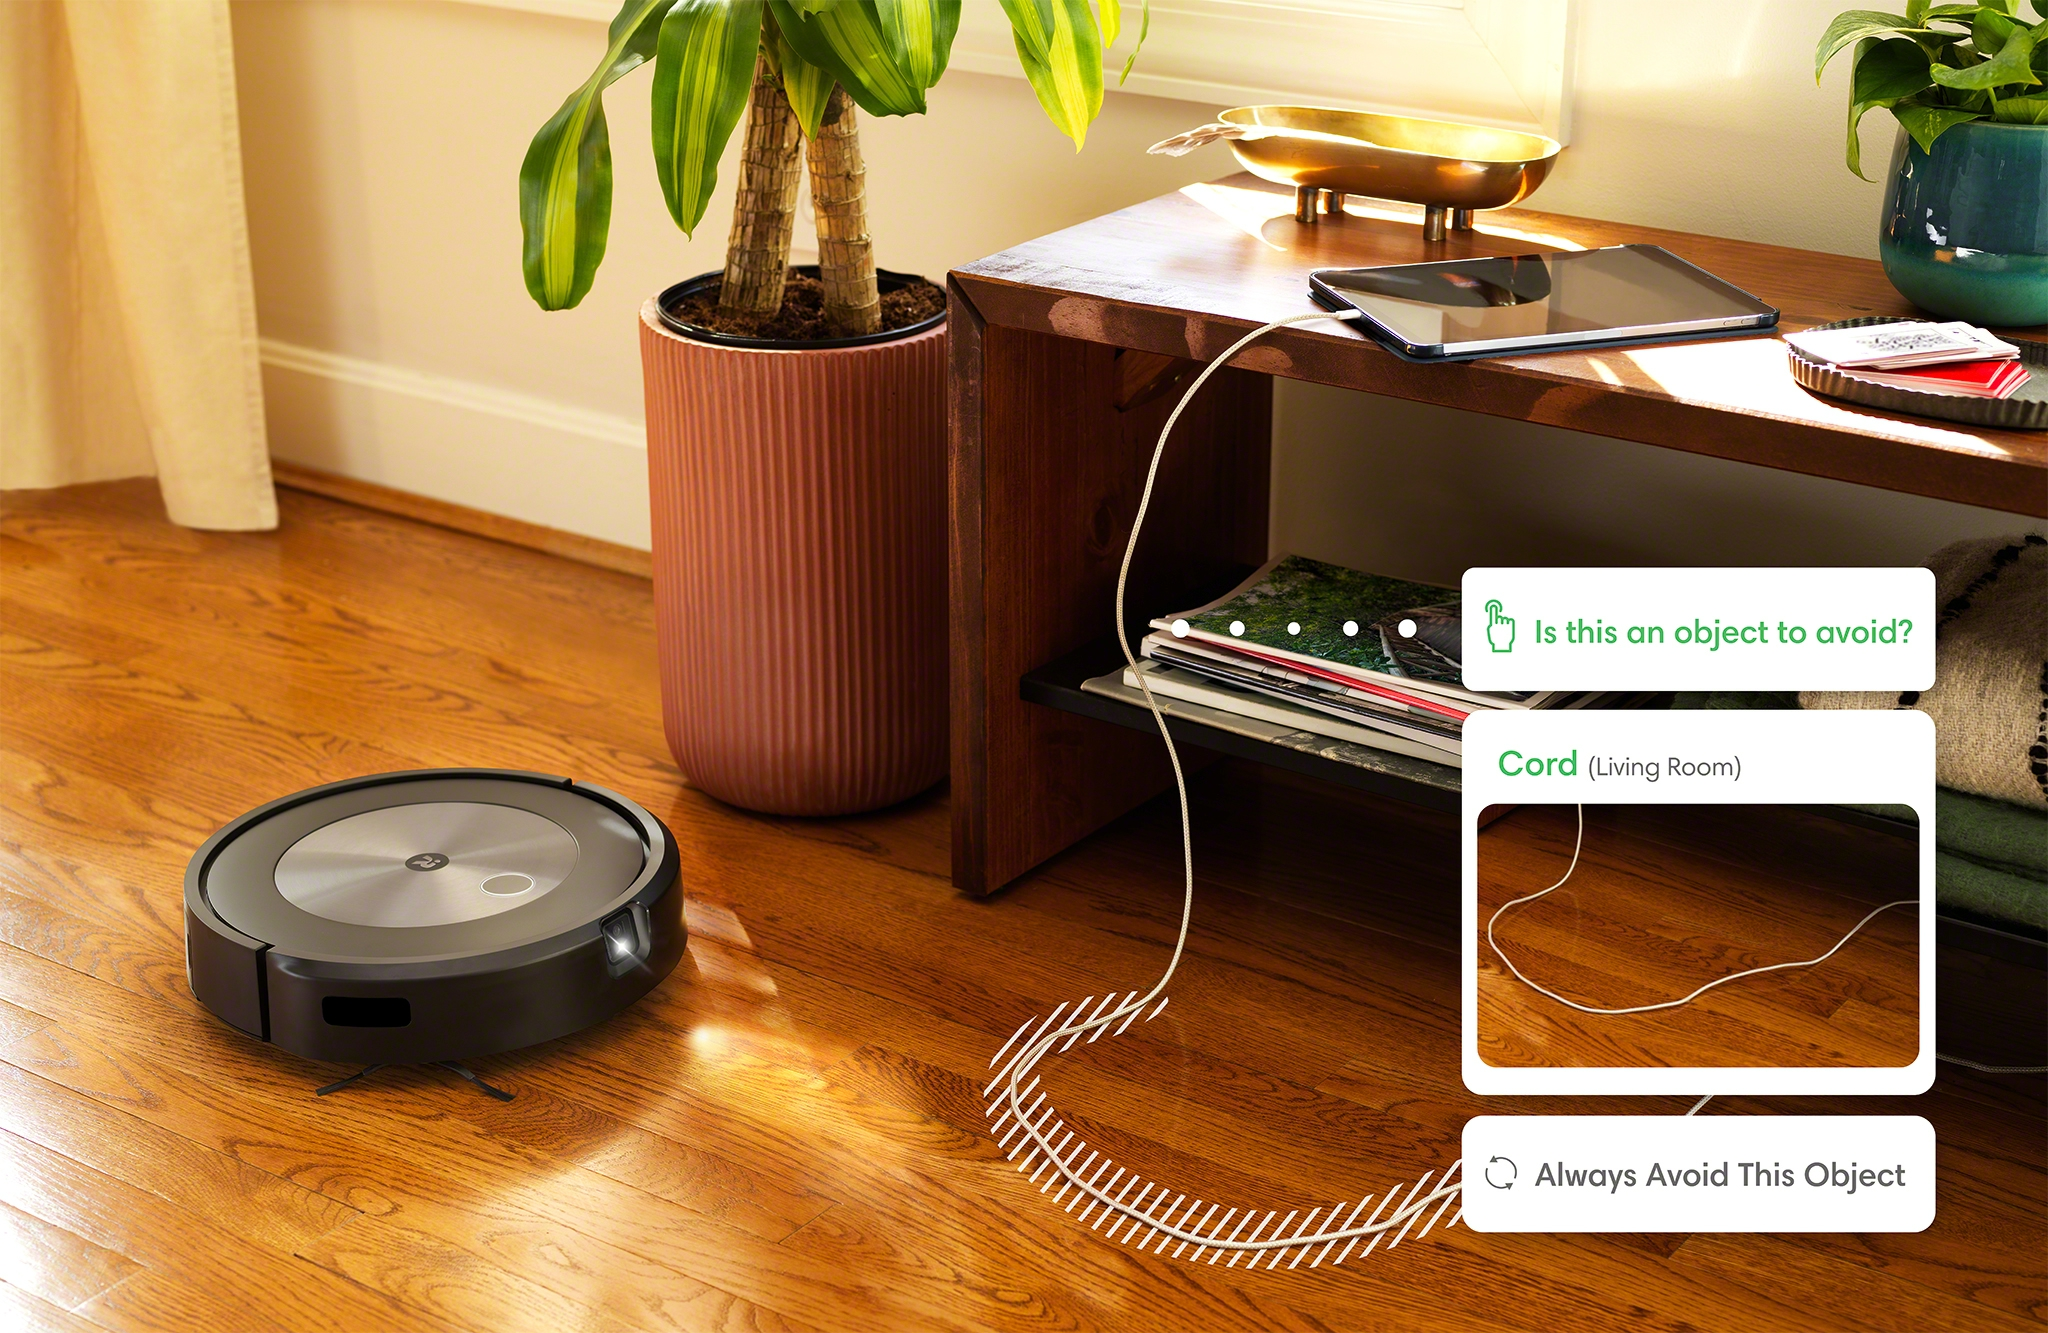 The iRobot Roomba j7+ reacts to objects in the home with PrecisionVision Navigation, giving the robot the ability to identify and avoid common obstacles, such as cords.